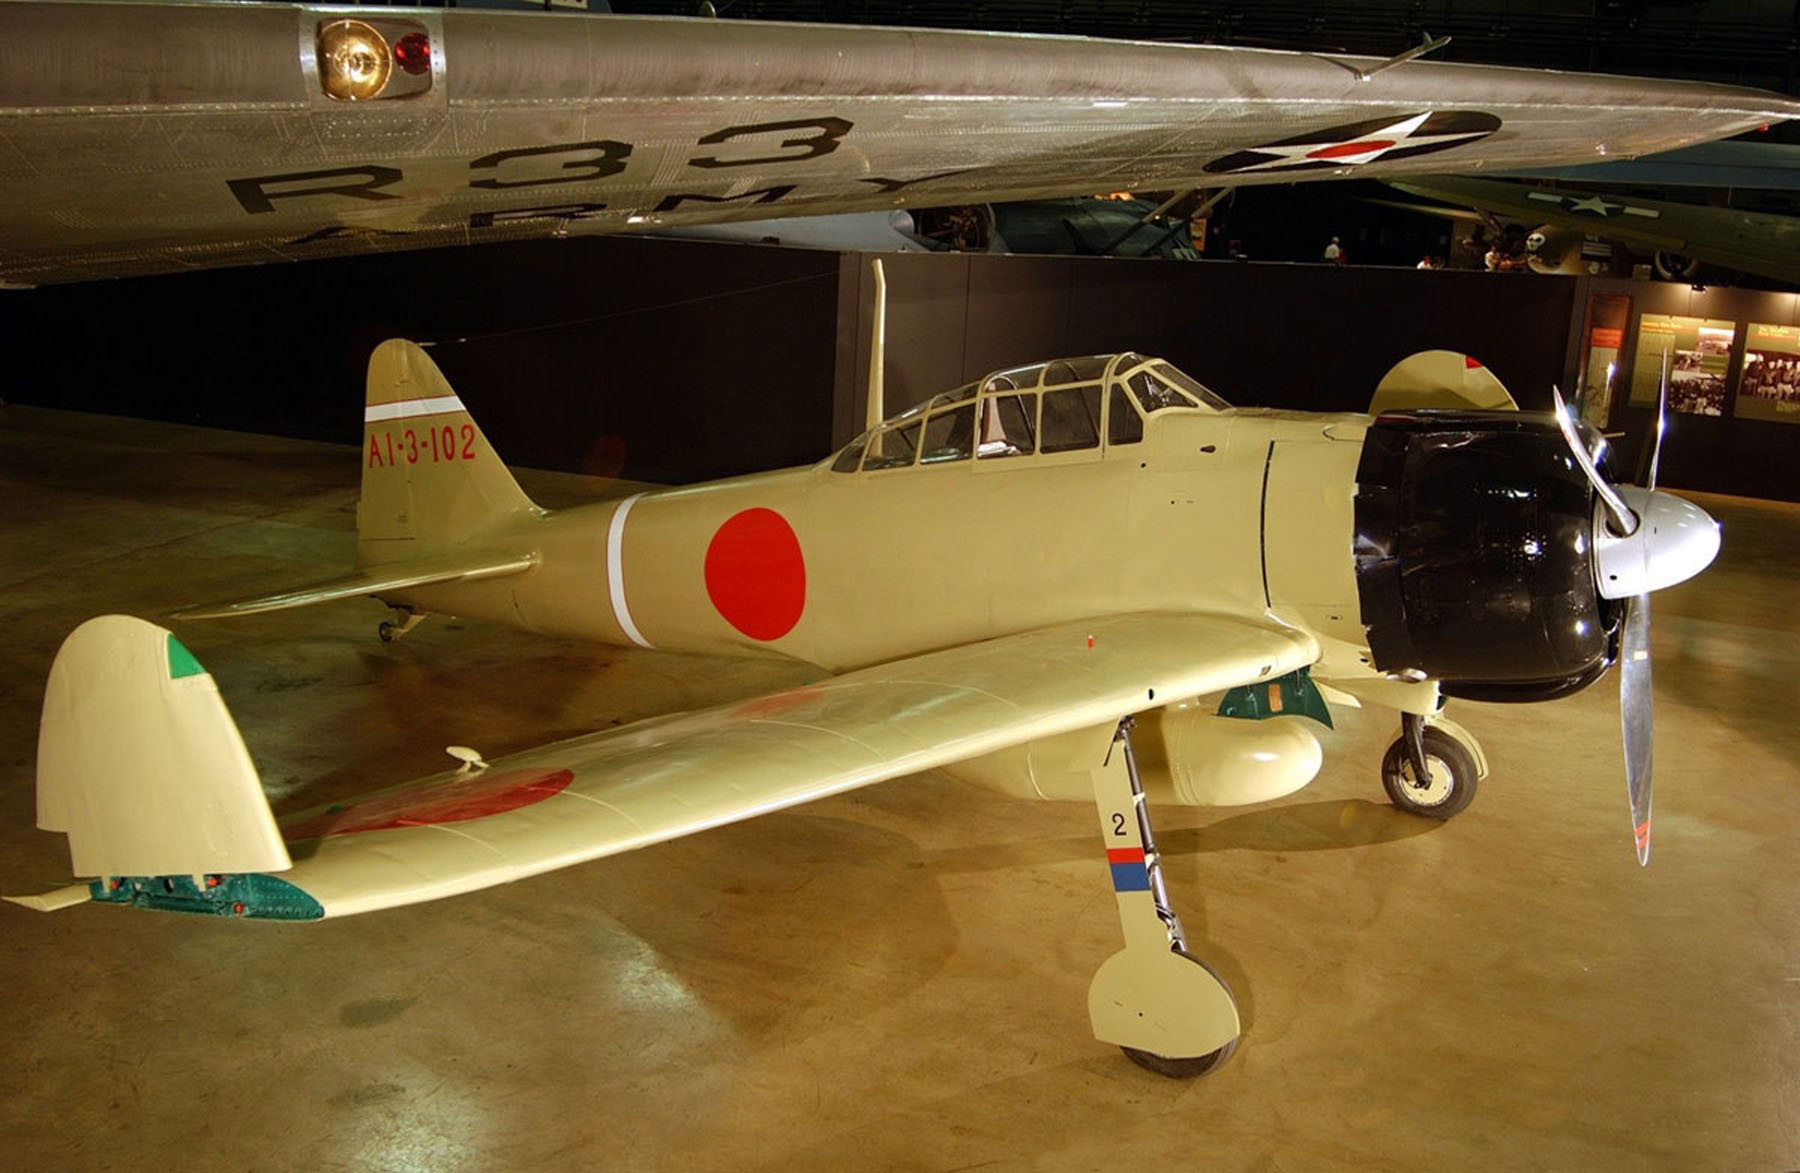 Japvtwinenginediagramjpg Mitsubishi A6m Zero Wikipedia A Propeller Aircraft On Display In Museum The Wing Tips Are Folded Up